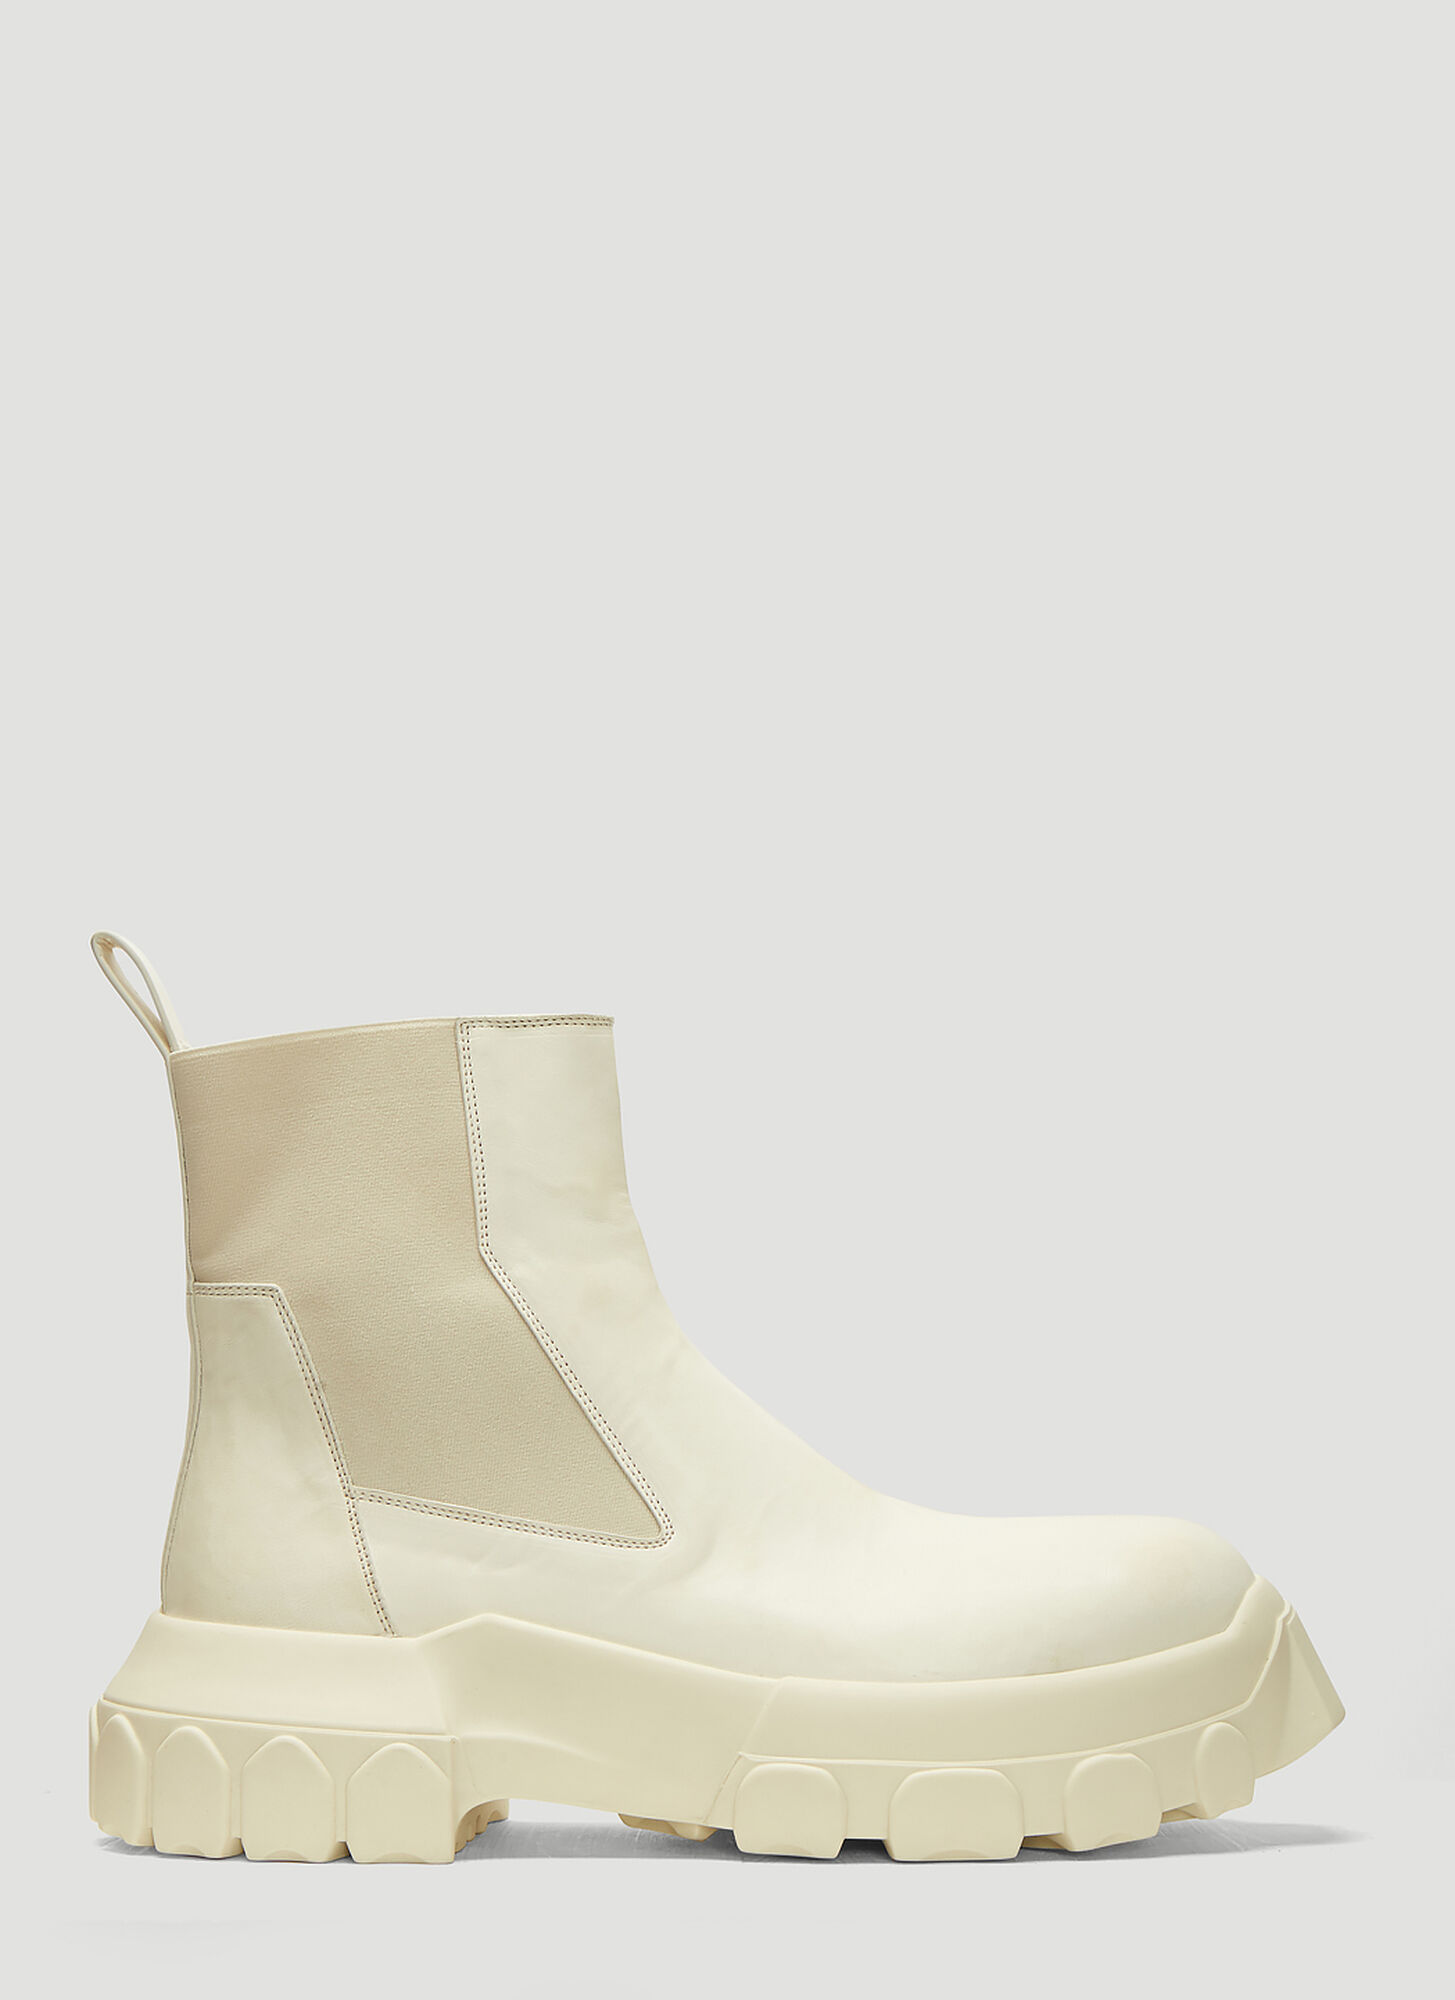 Rick Owens Bozo Tractor Beetle Boots in White